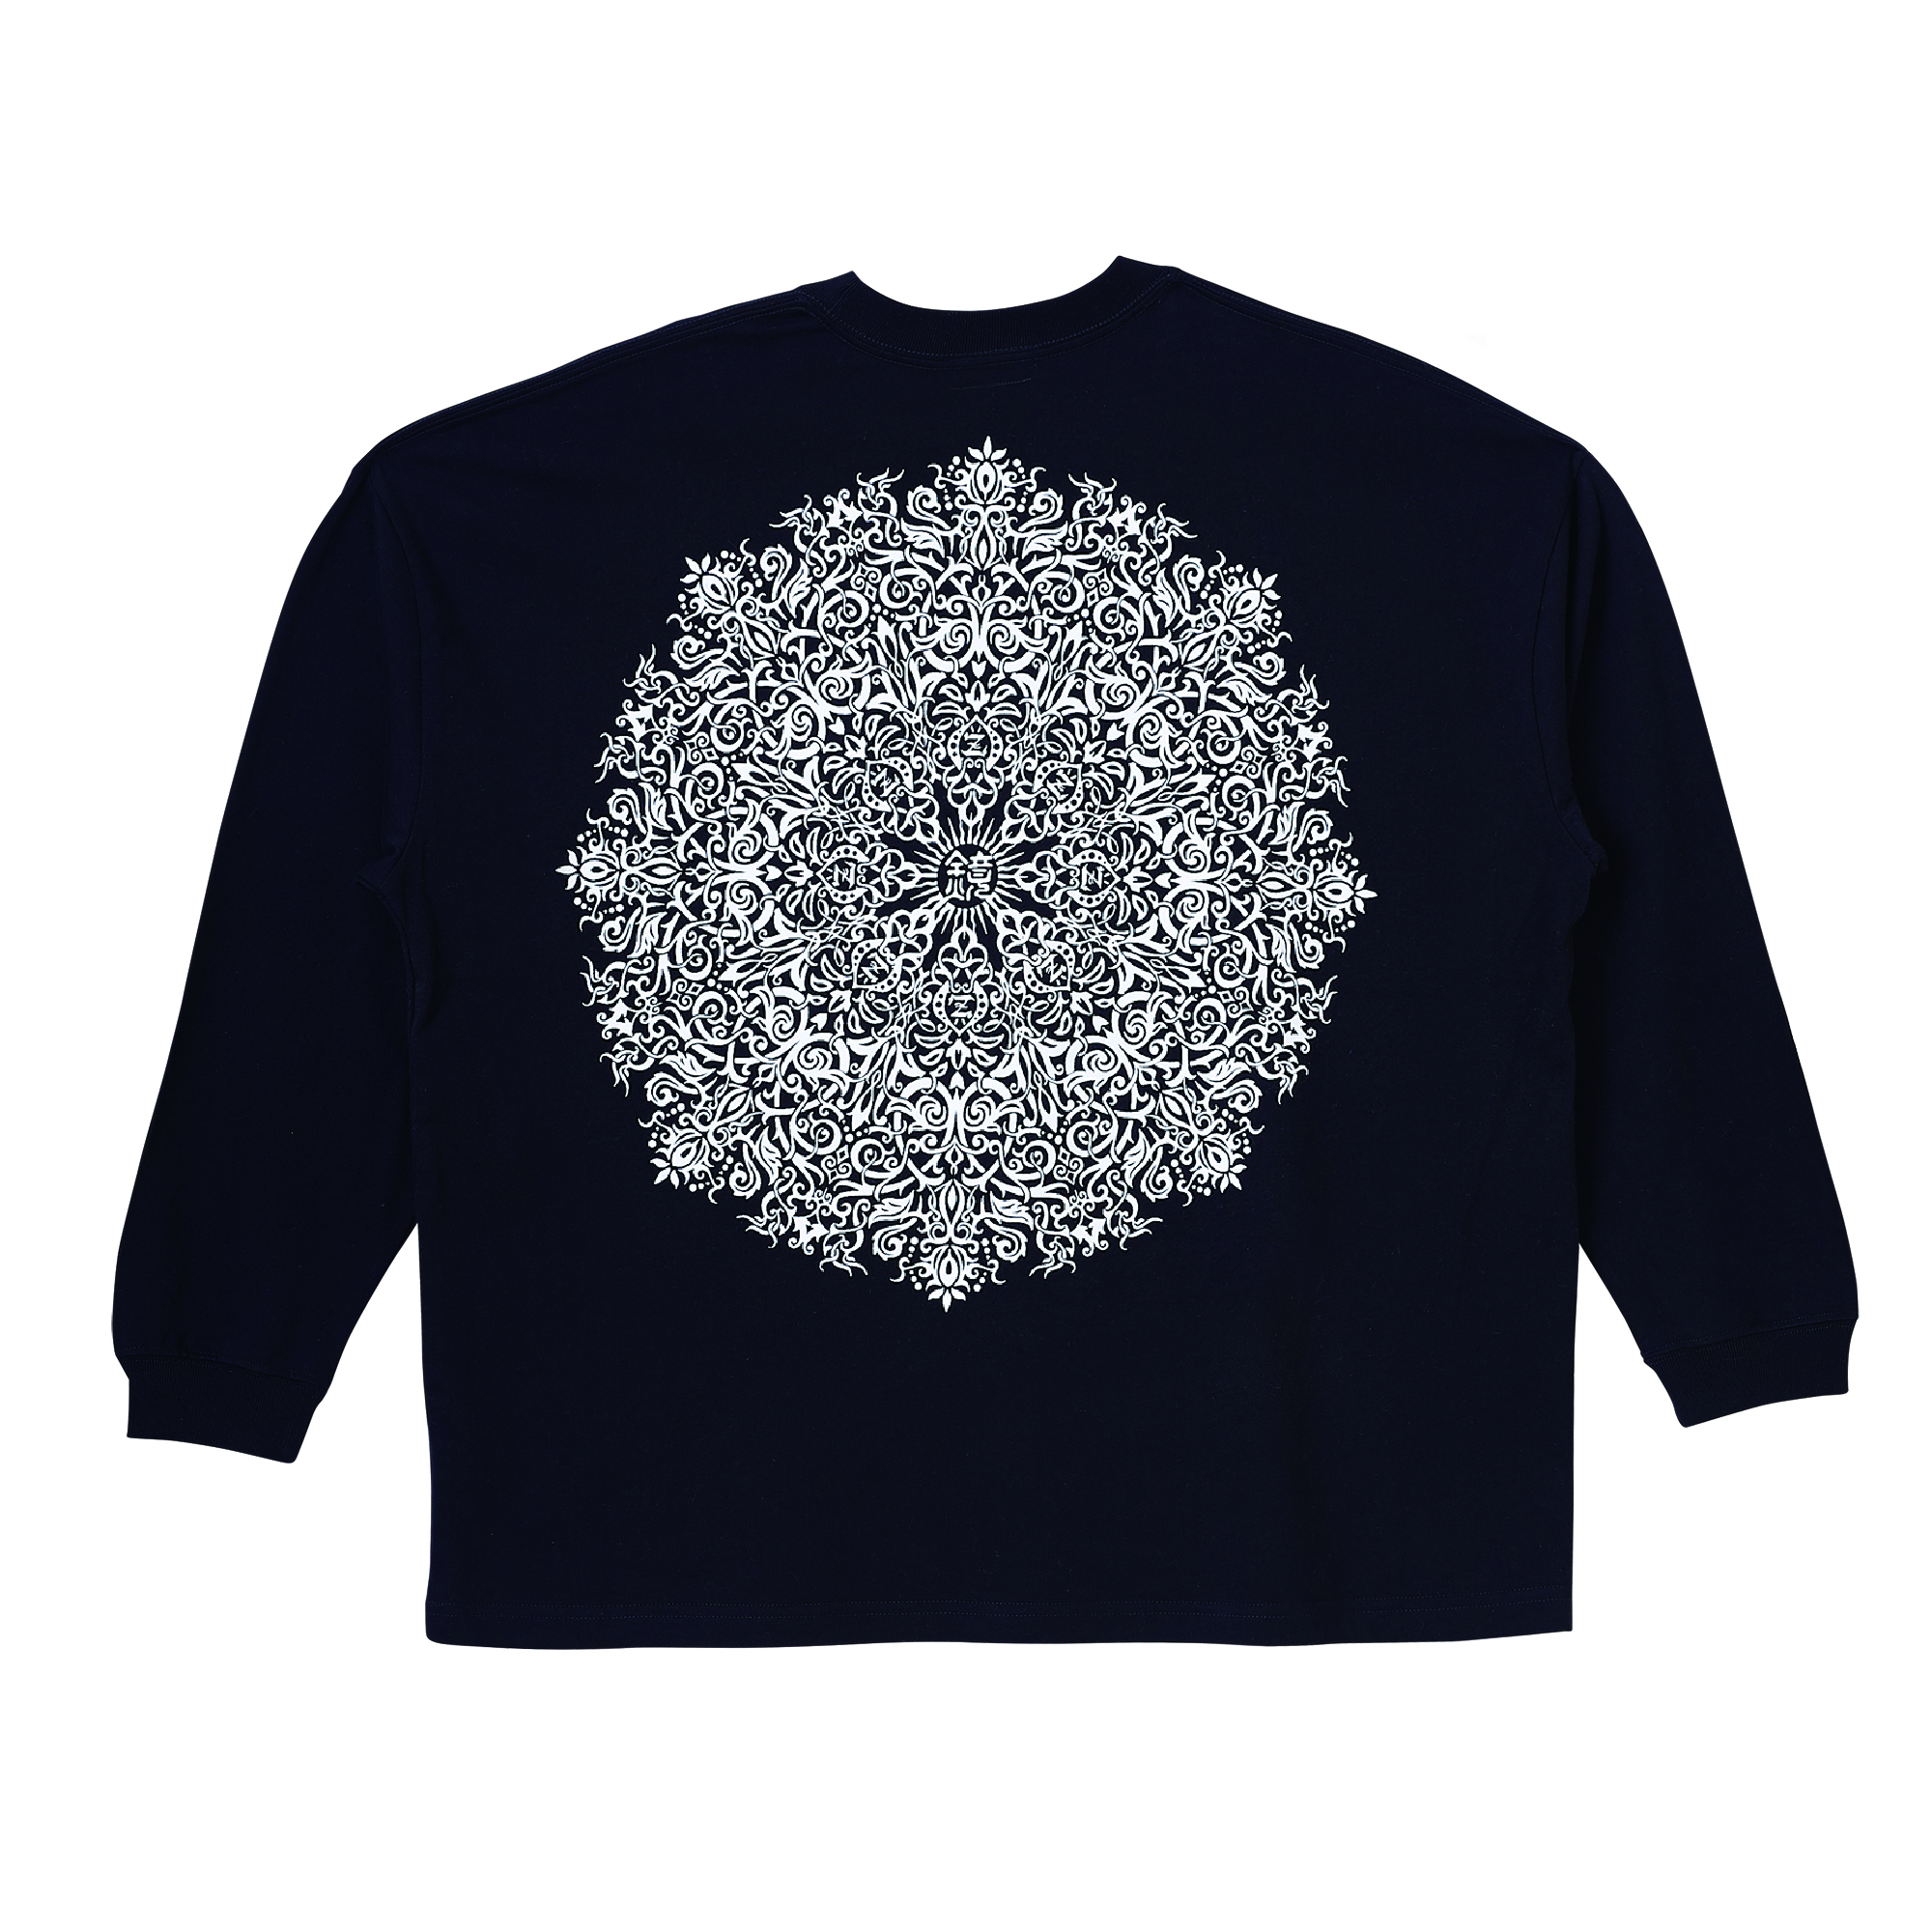 Zephyren(ゼファレン)BIG L/S TEE - VISIONARY / Kaleidoscope - BLACK